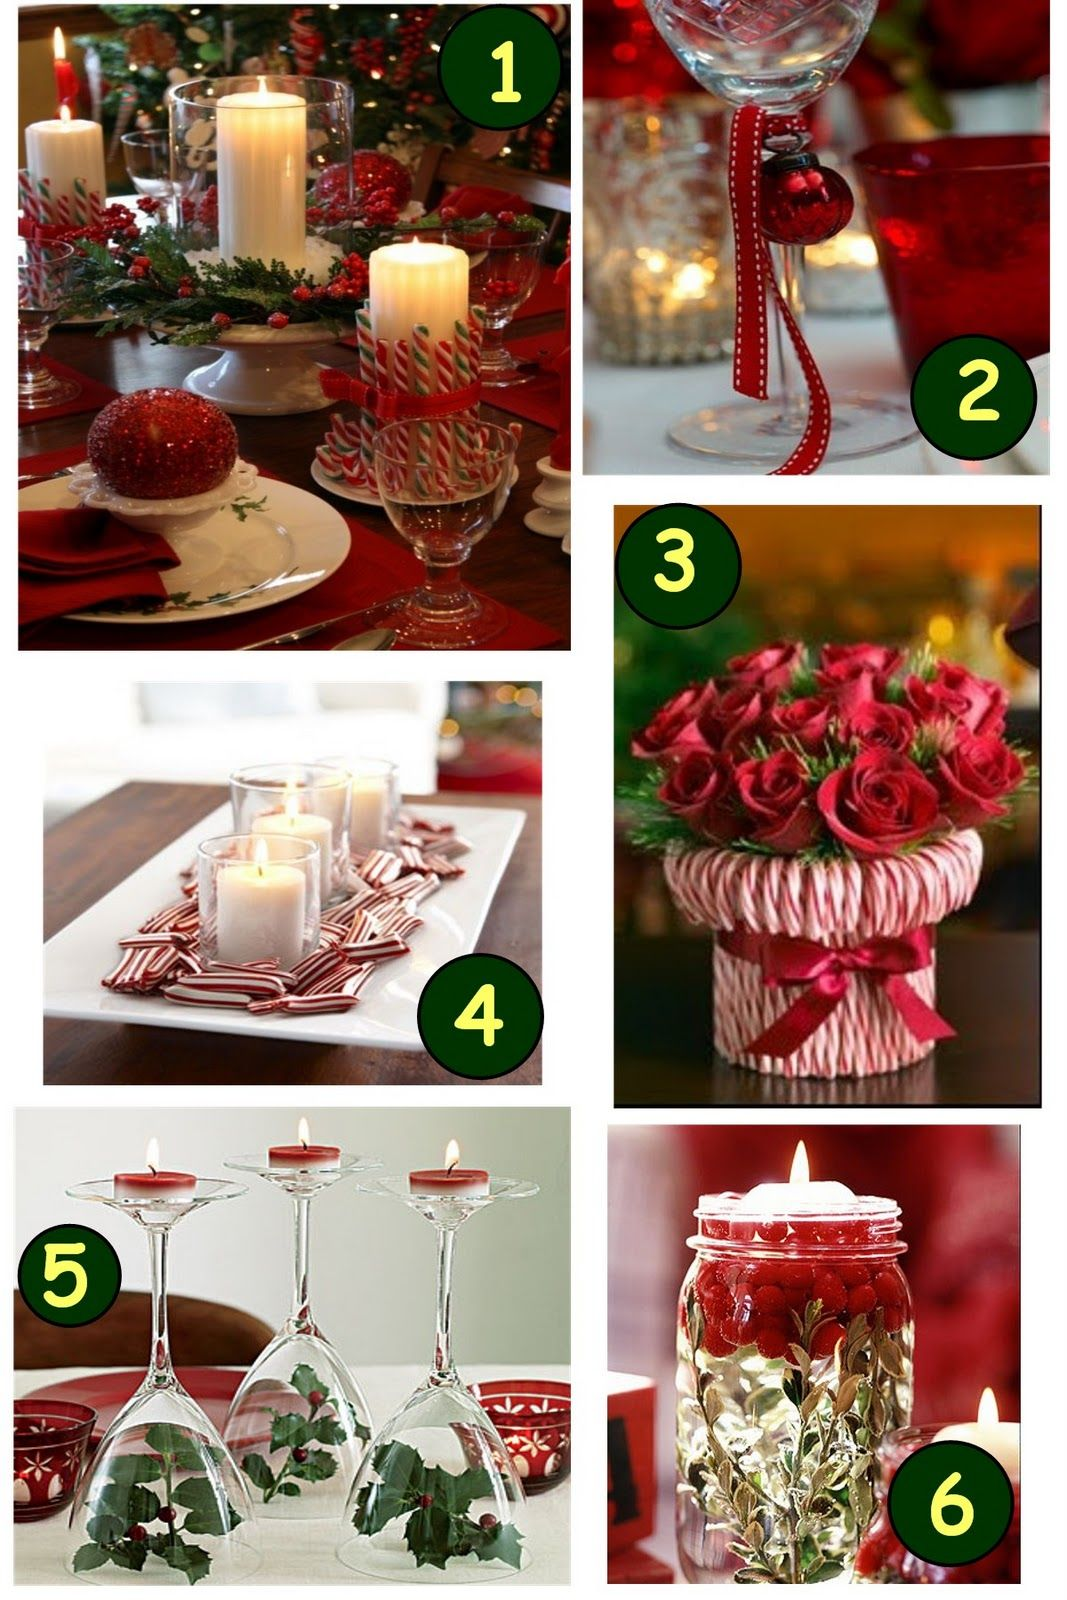 Christmas table decoration ideas for parties -